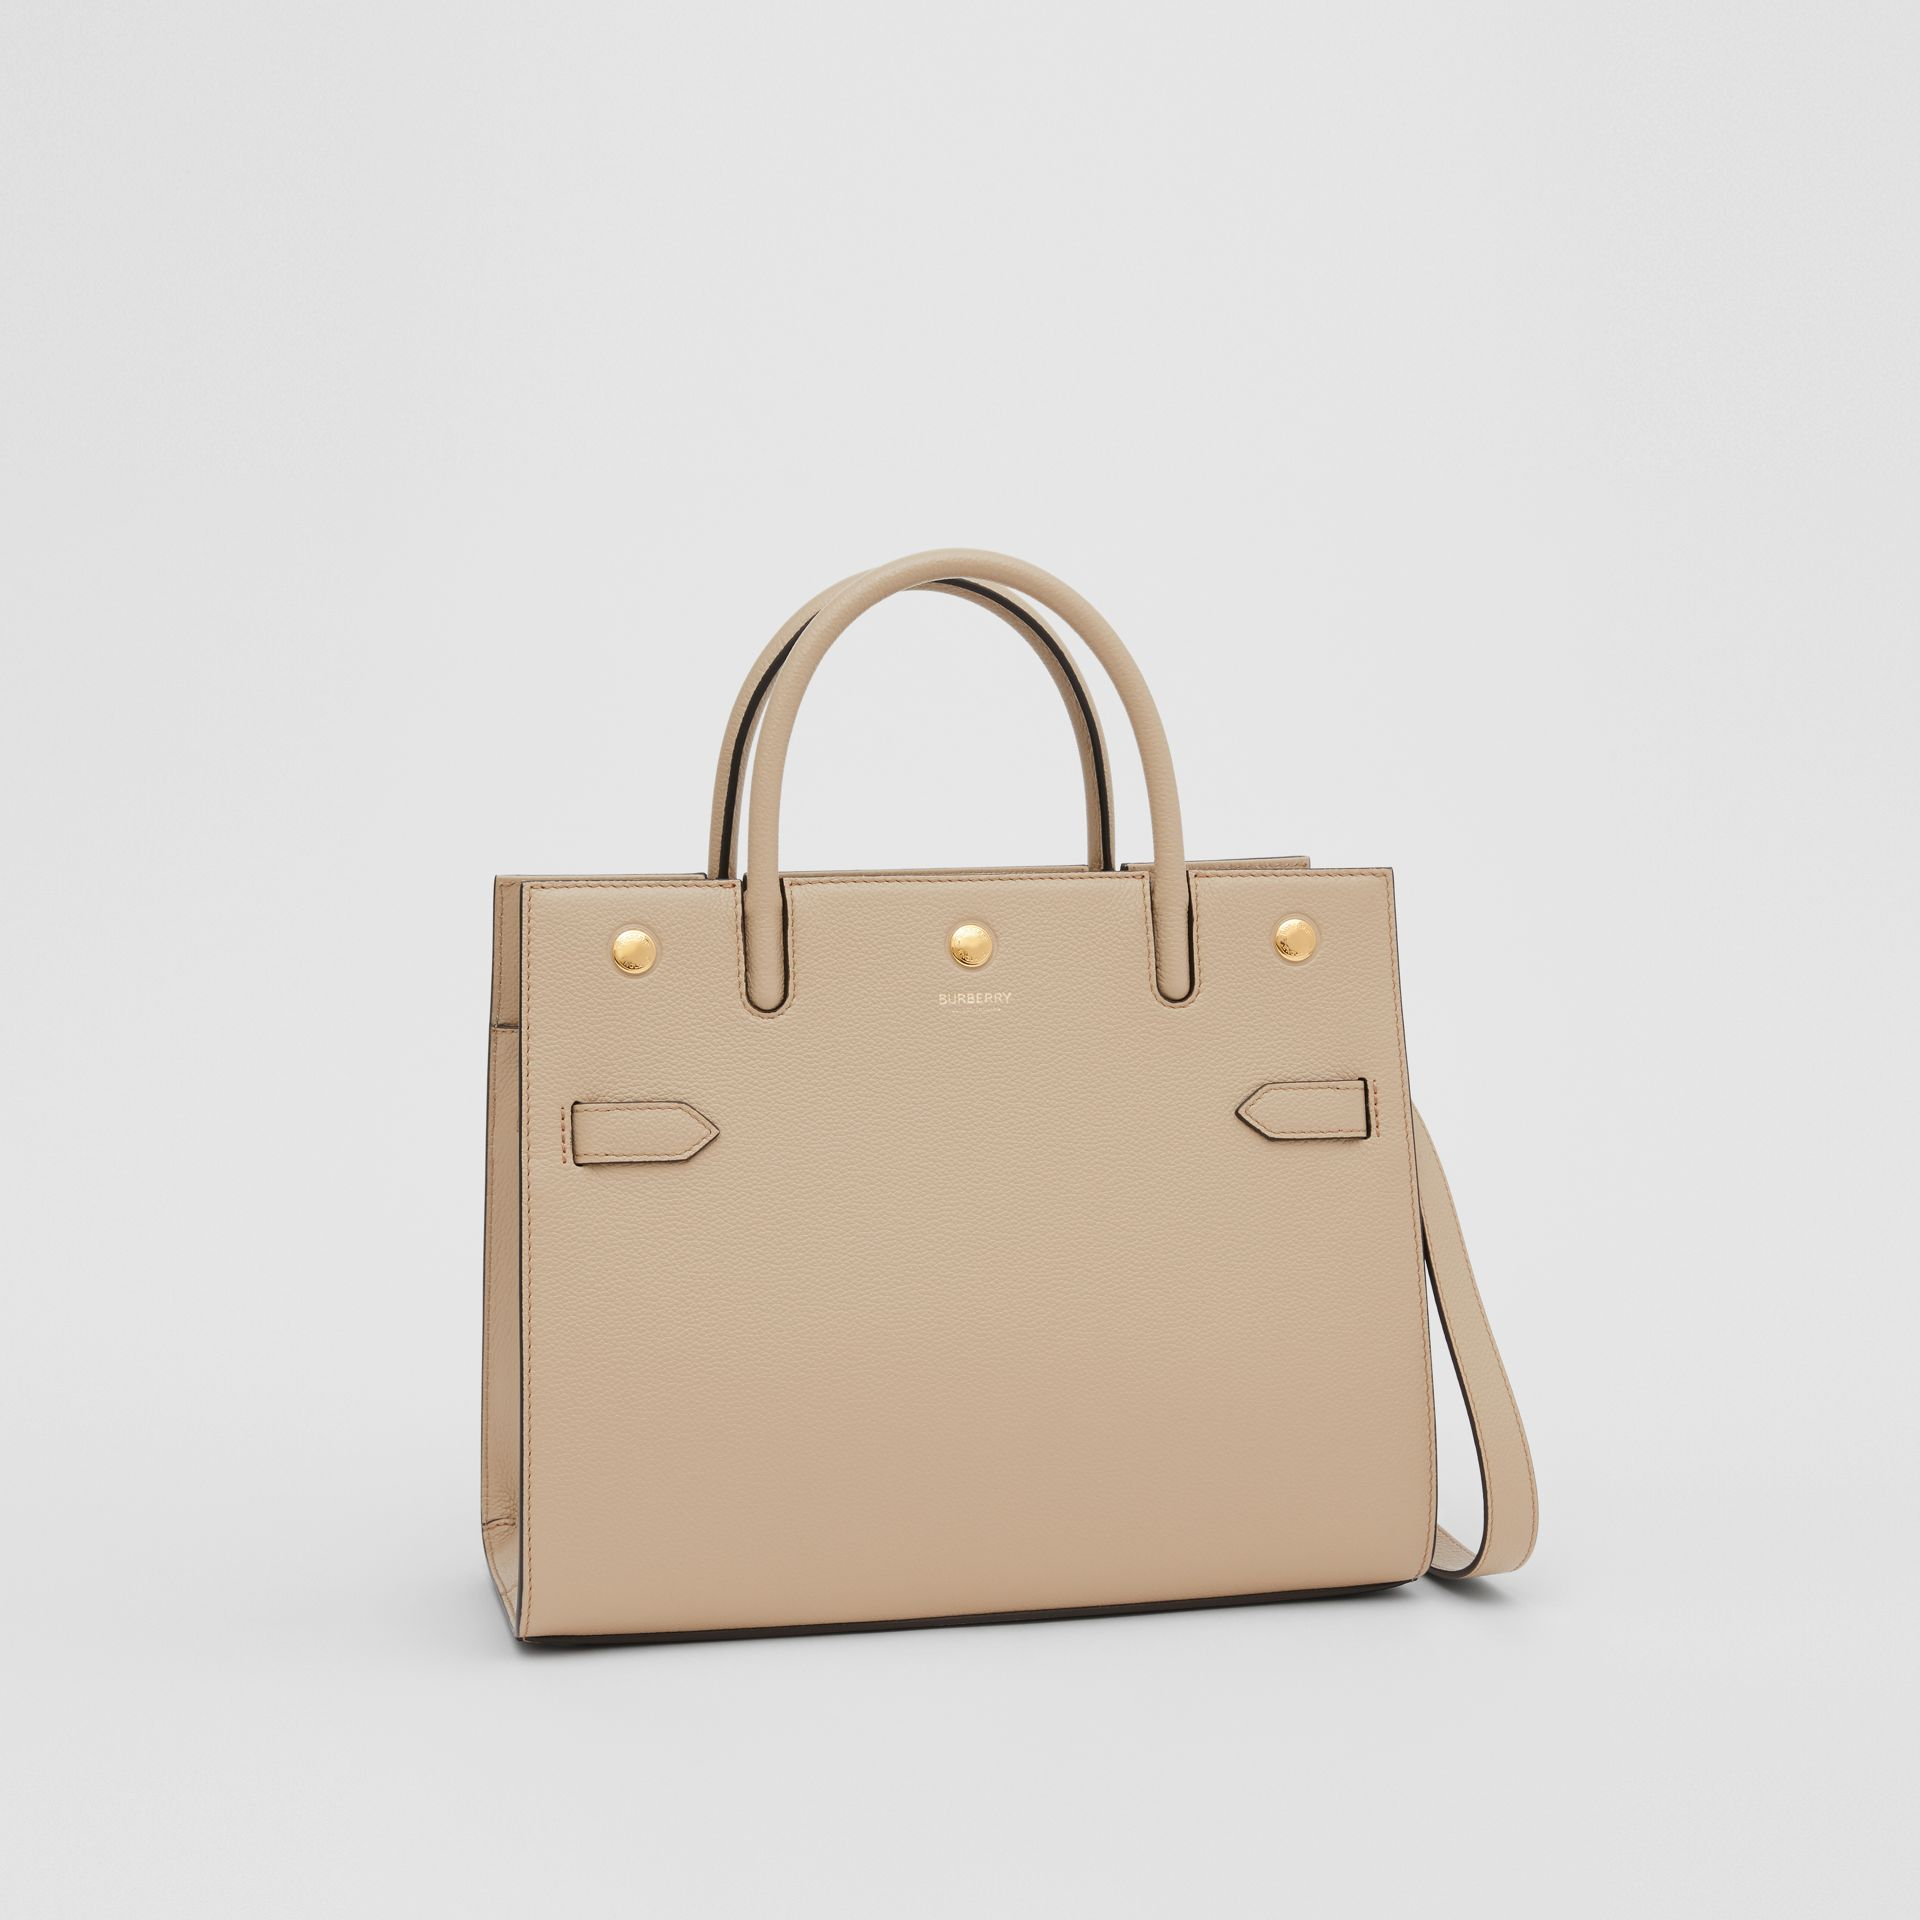 Small Leather Two-handle Title Bag in Light Beige - Women | Burberry United Kingdom - gallery image 4